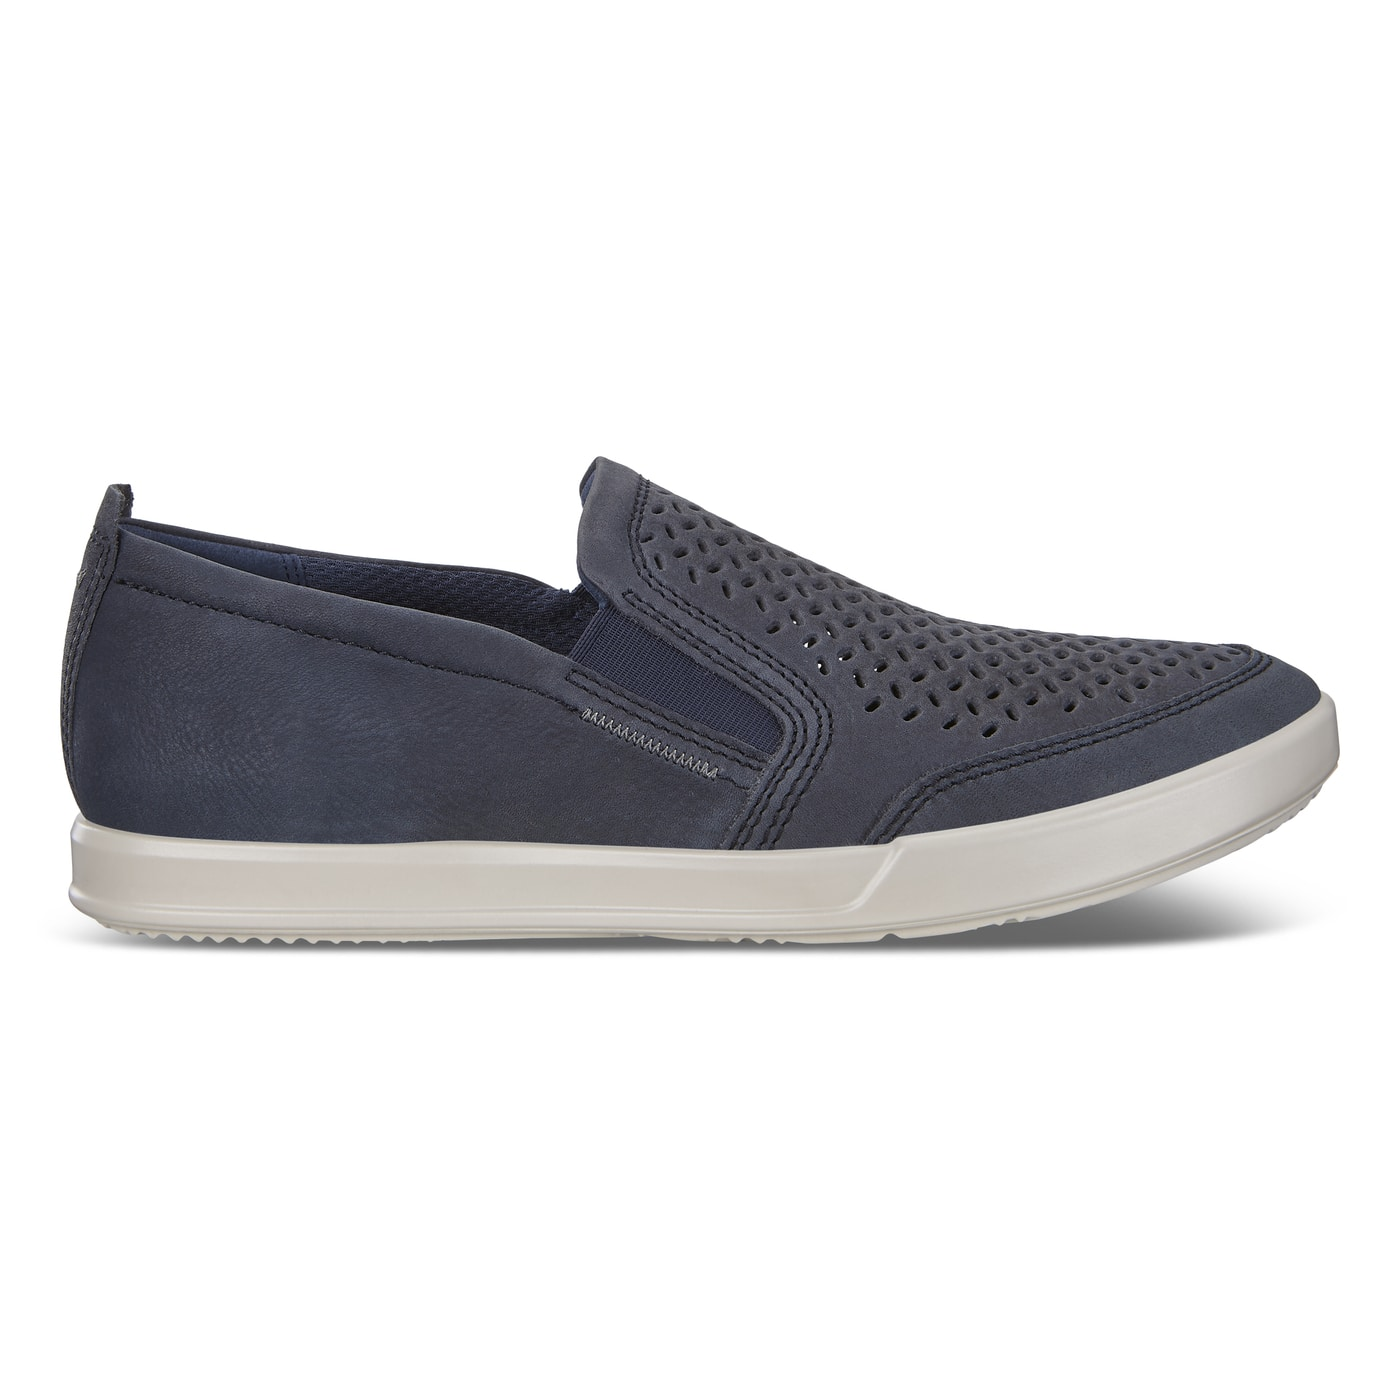 e354e589 Ecco: Men's Ecco Collin 2.0 Slip-On Shoes (various colors ...